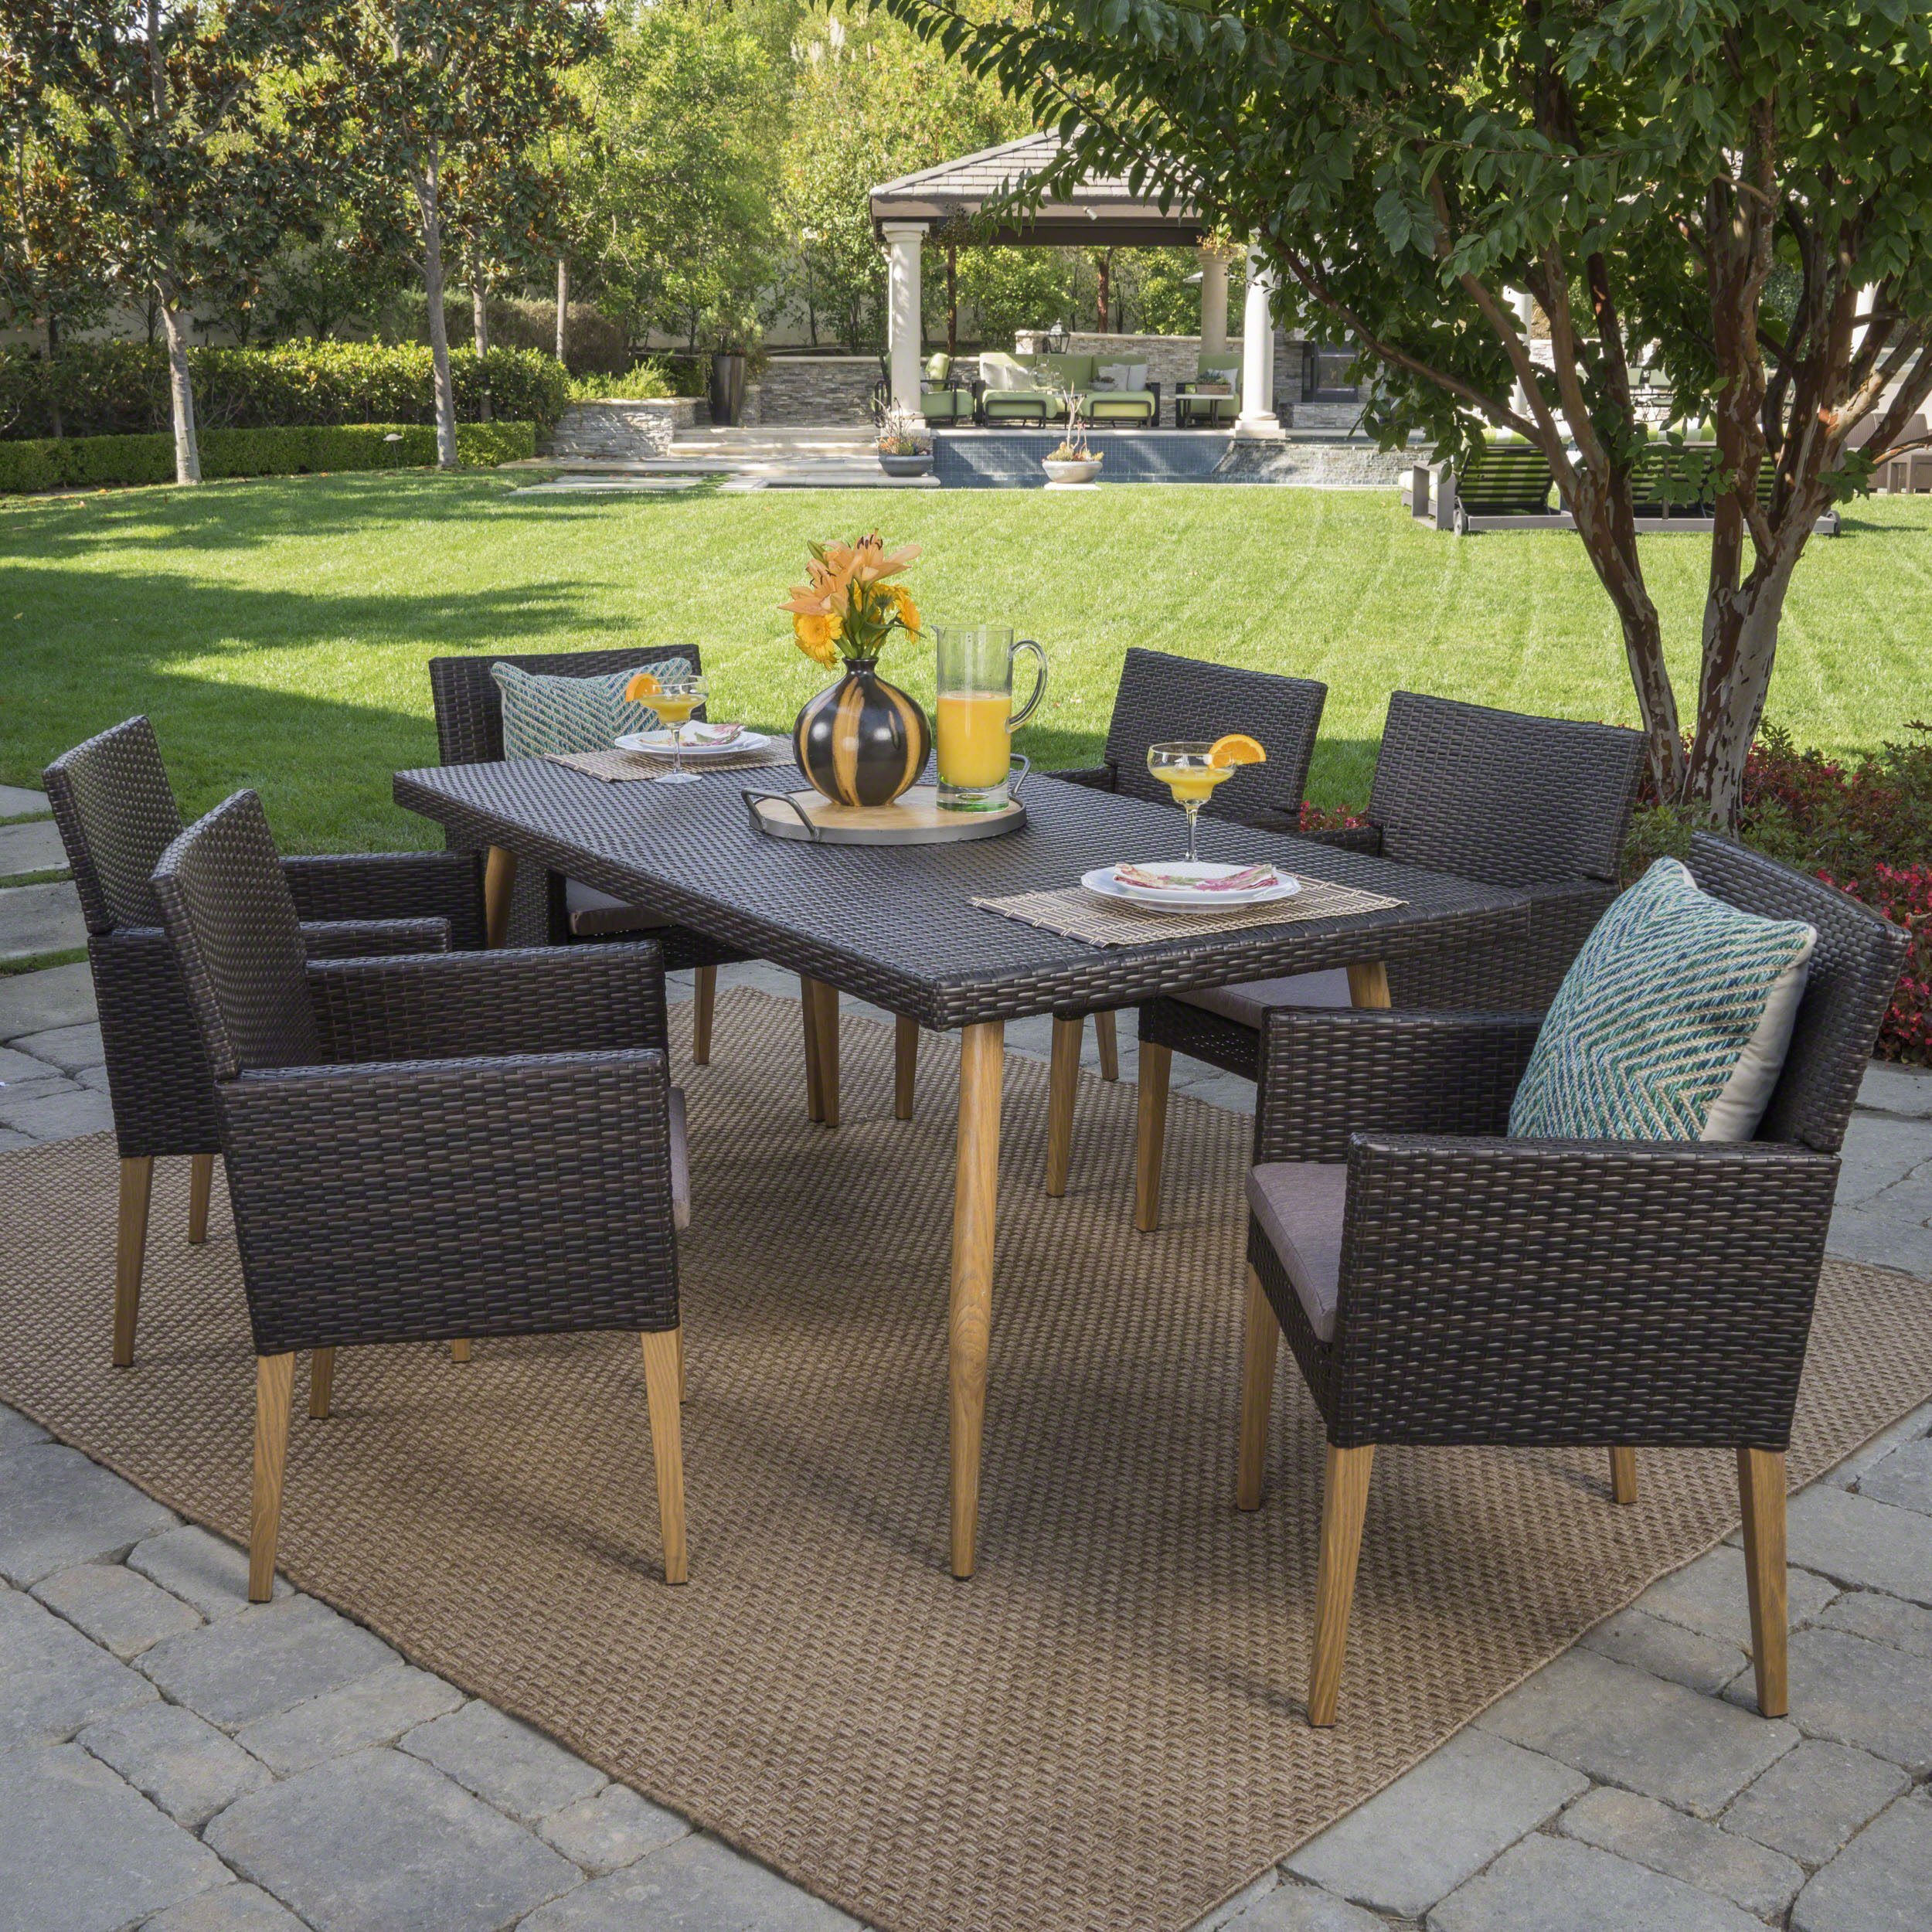 Great Deal Furniture Dryse | 7 Piece Outdoor Wicker Rectangular Dining Set with Light Brown Wood Finished Legs and Mocha Cushions | in Multibrown by Great Deal Furniture